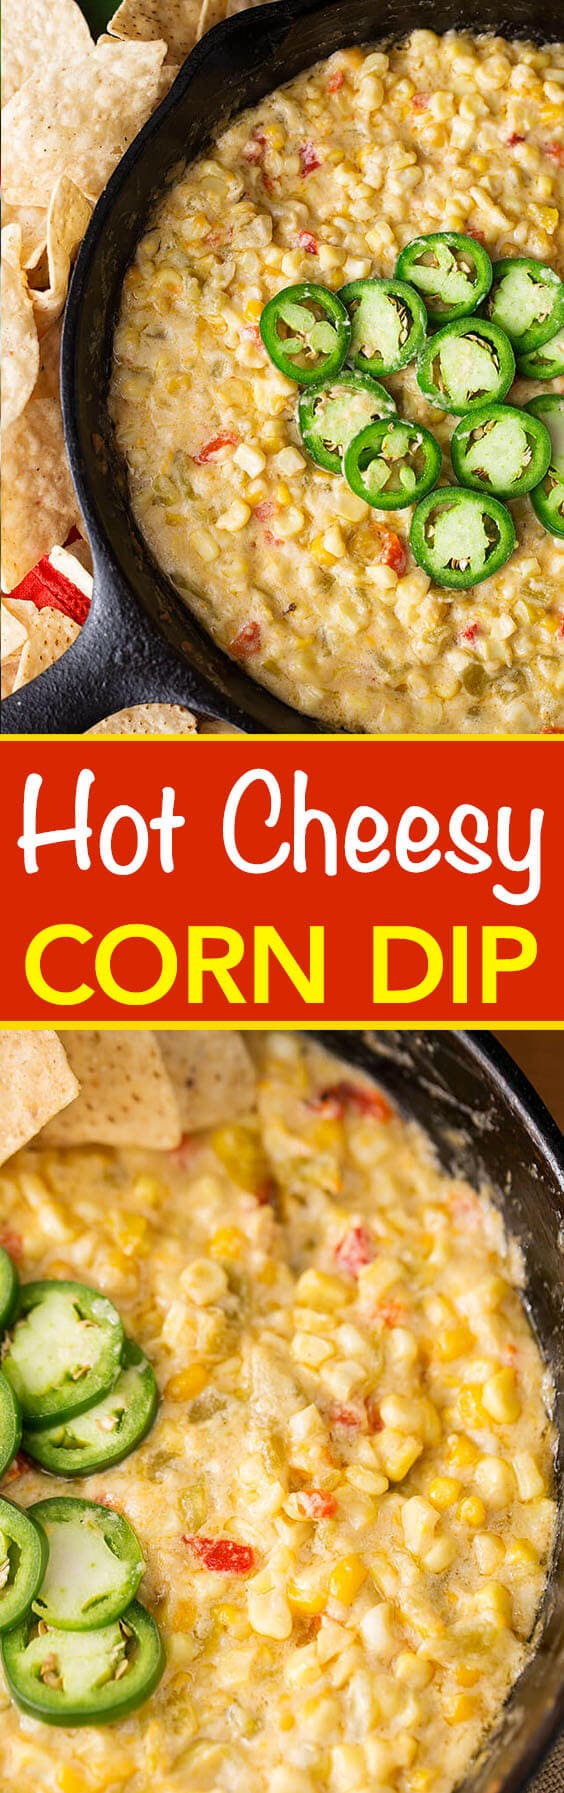 Hot Cheesy Corn Dip is a flavorful appetizer dip for game day and a party favorite. With corn, green chilis and cheese, we love this corn dip. simplyhappyfoodie.com #hotcheesycorndip #corndip #gameday #appetizer